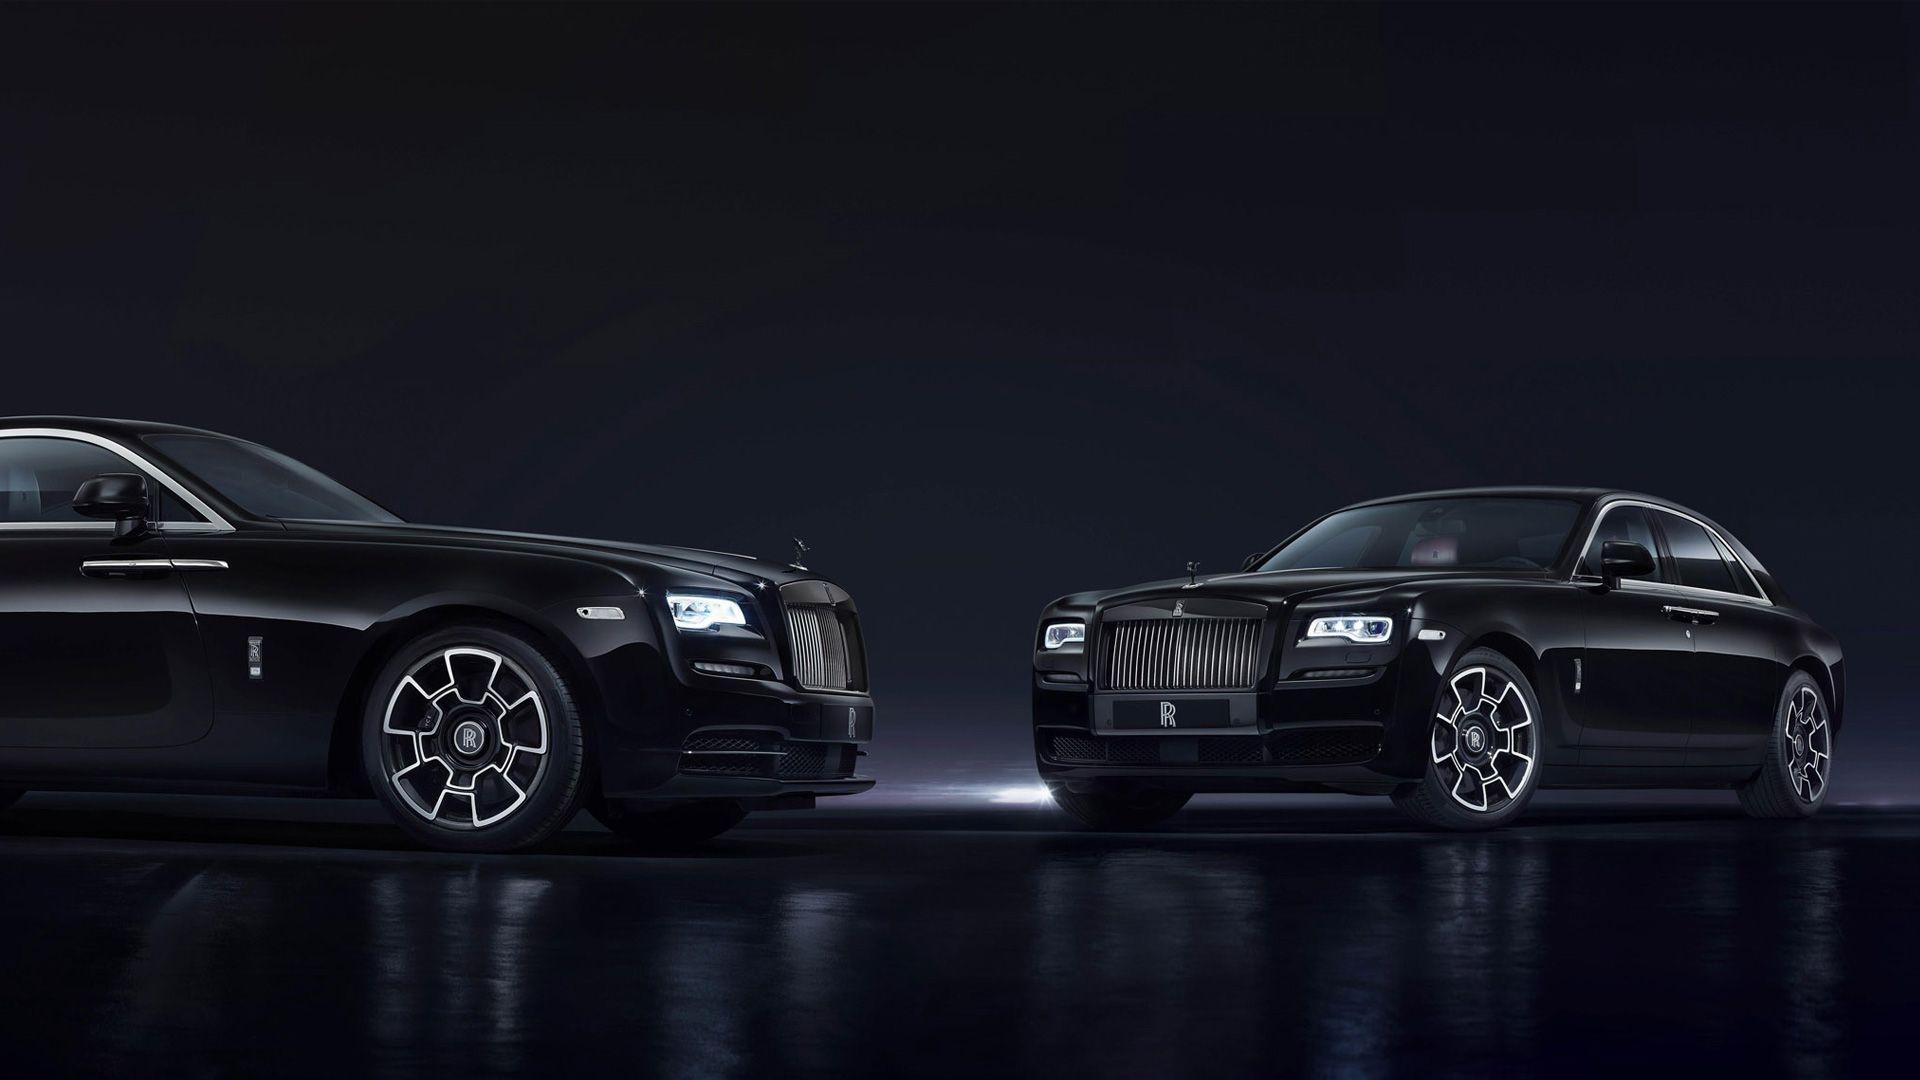 Rolls Royce Ghost Wraith Black Badge 2016 Wallpapers